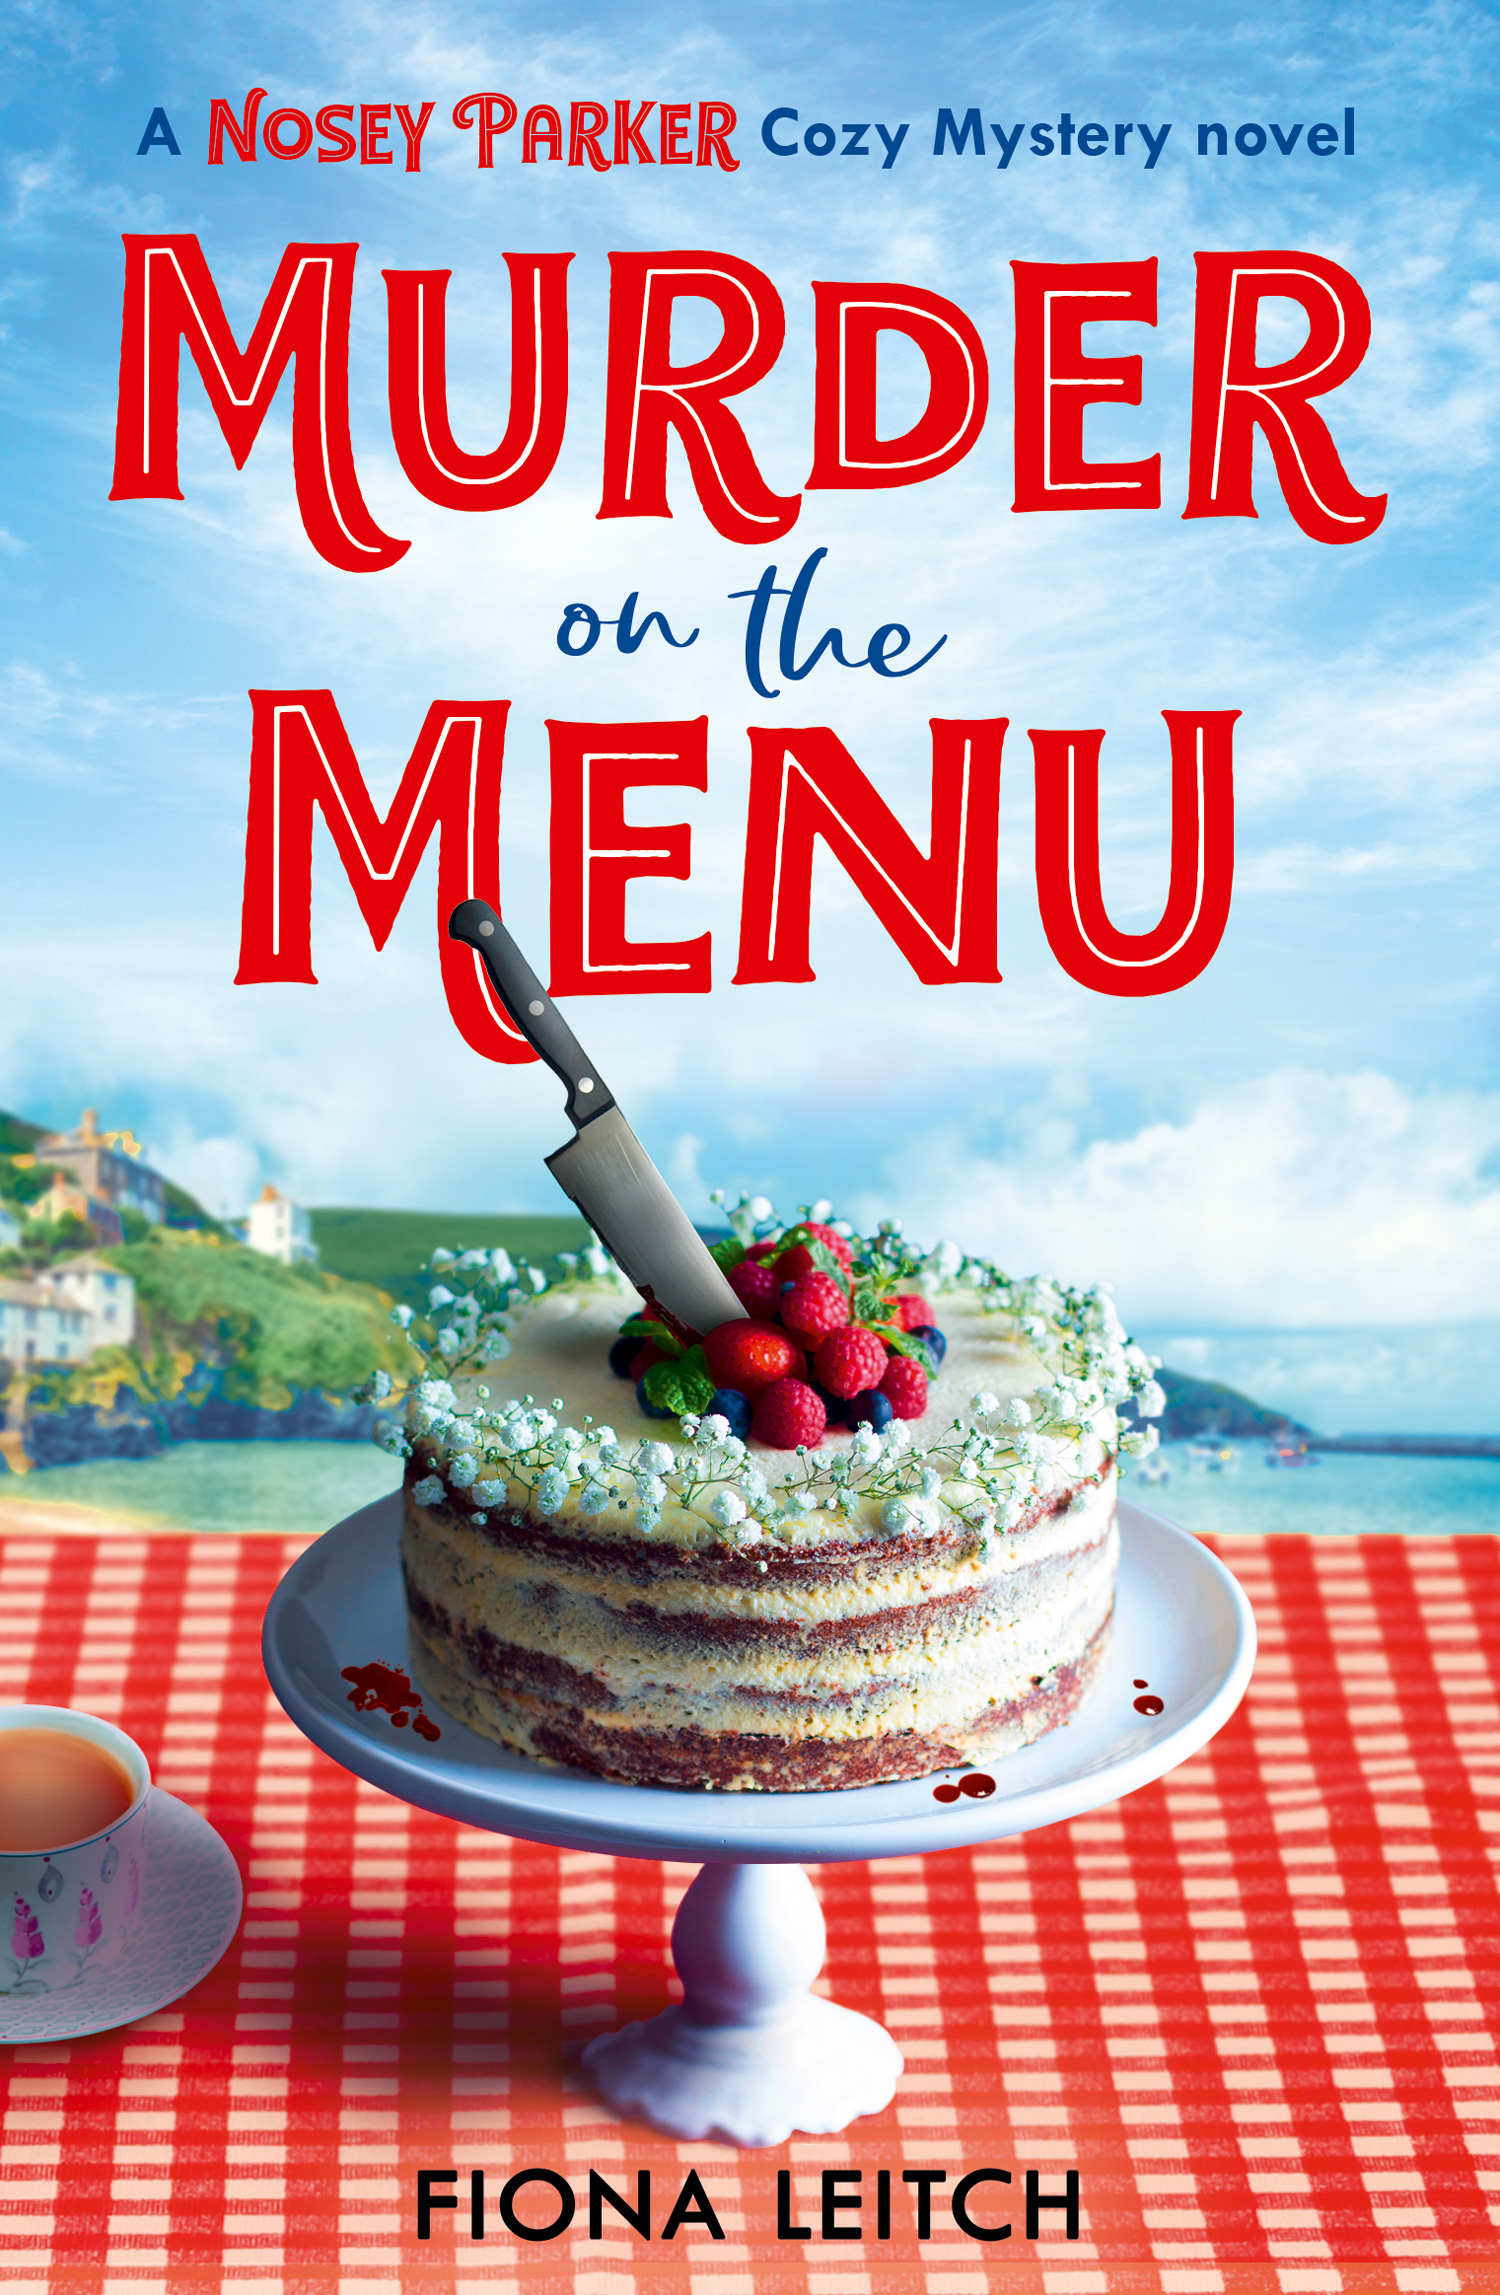 Murder on the Menu by Fiona Leitch @fkleitch @0neMoreChapter_ #BookReview #NoseyParker #NetGalleyCountdown #Book593